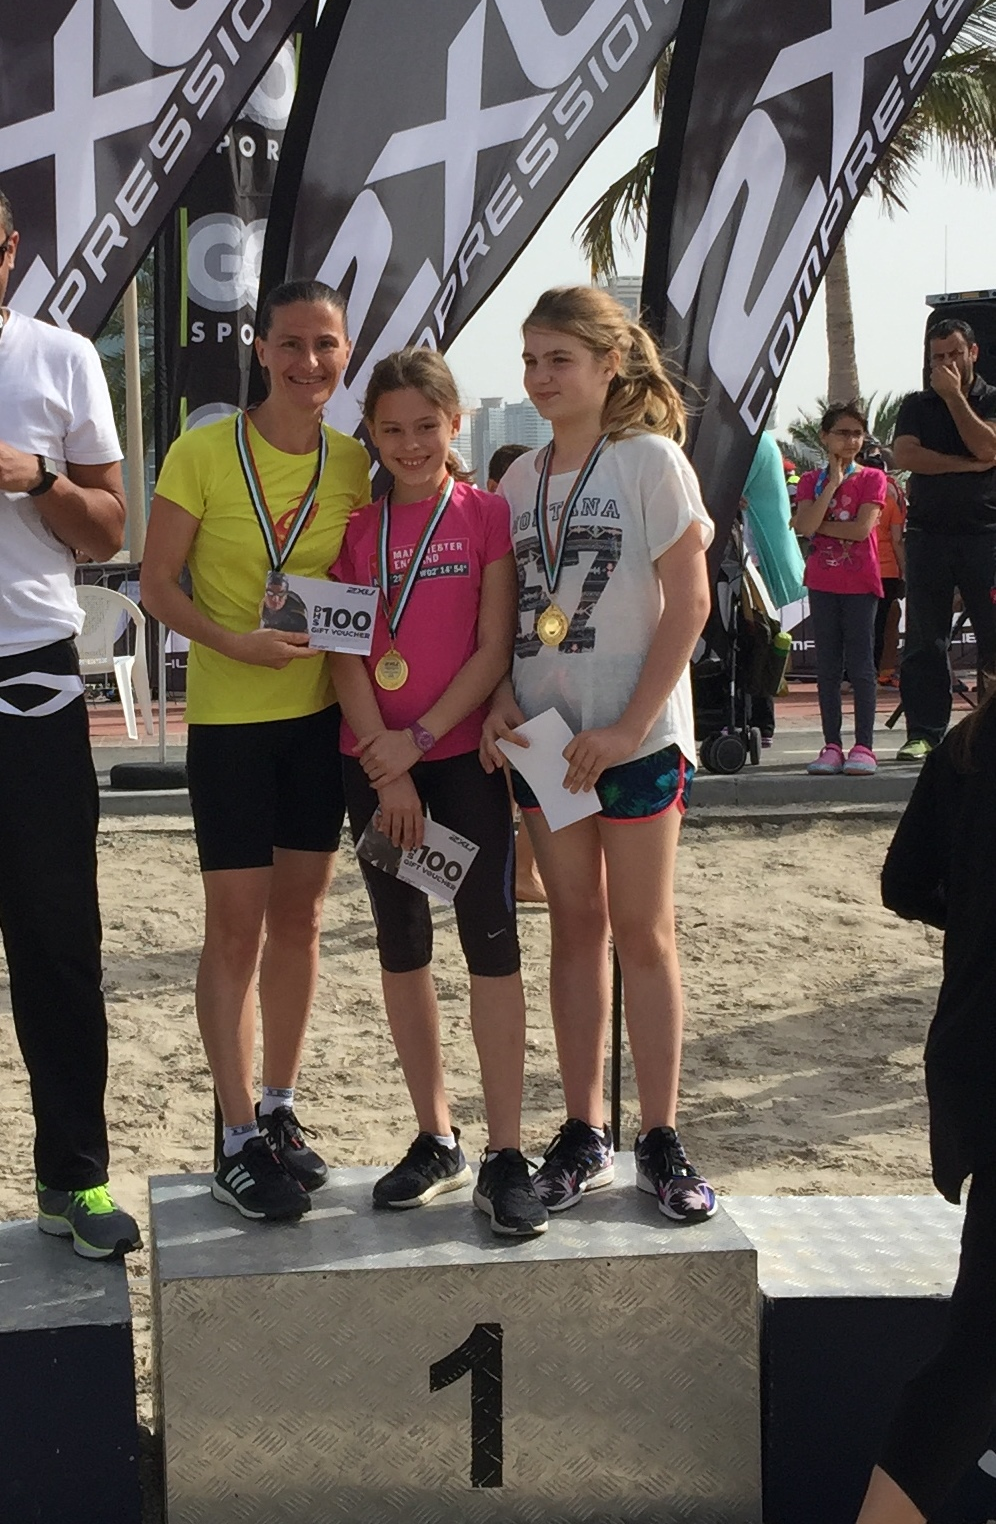 Running in the family... Laetitia Lemaire and daughter Elisa Lemaire and friend!